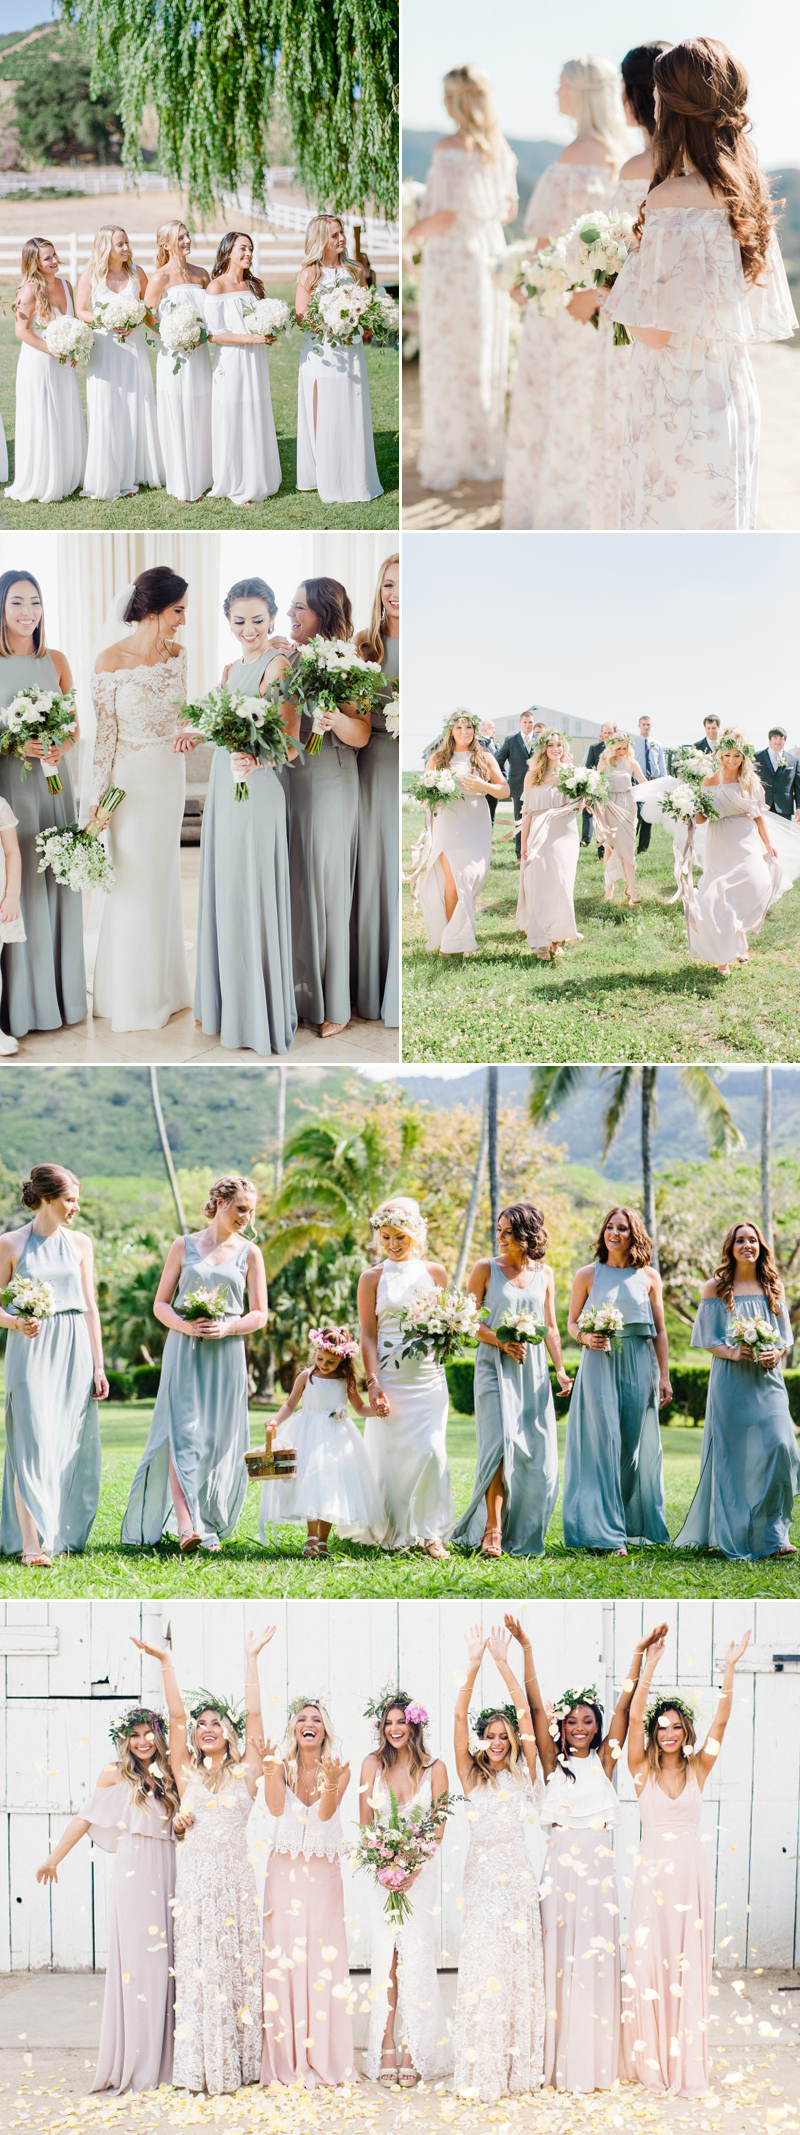 Where to Find Quality Bridesmaid Dresses 5